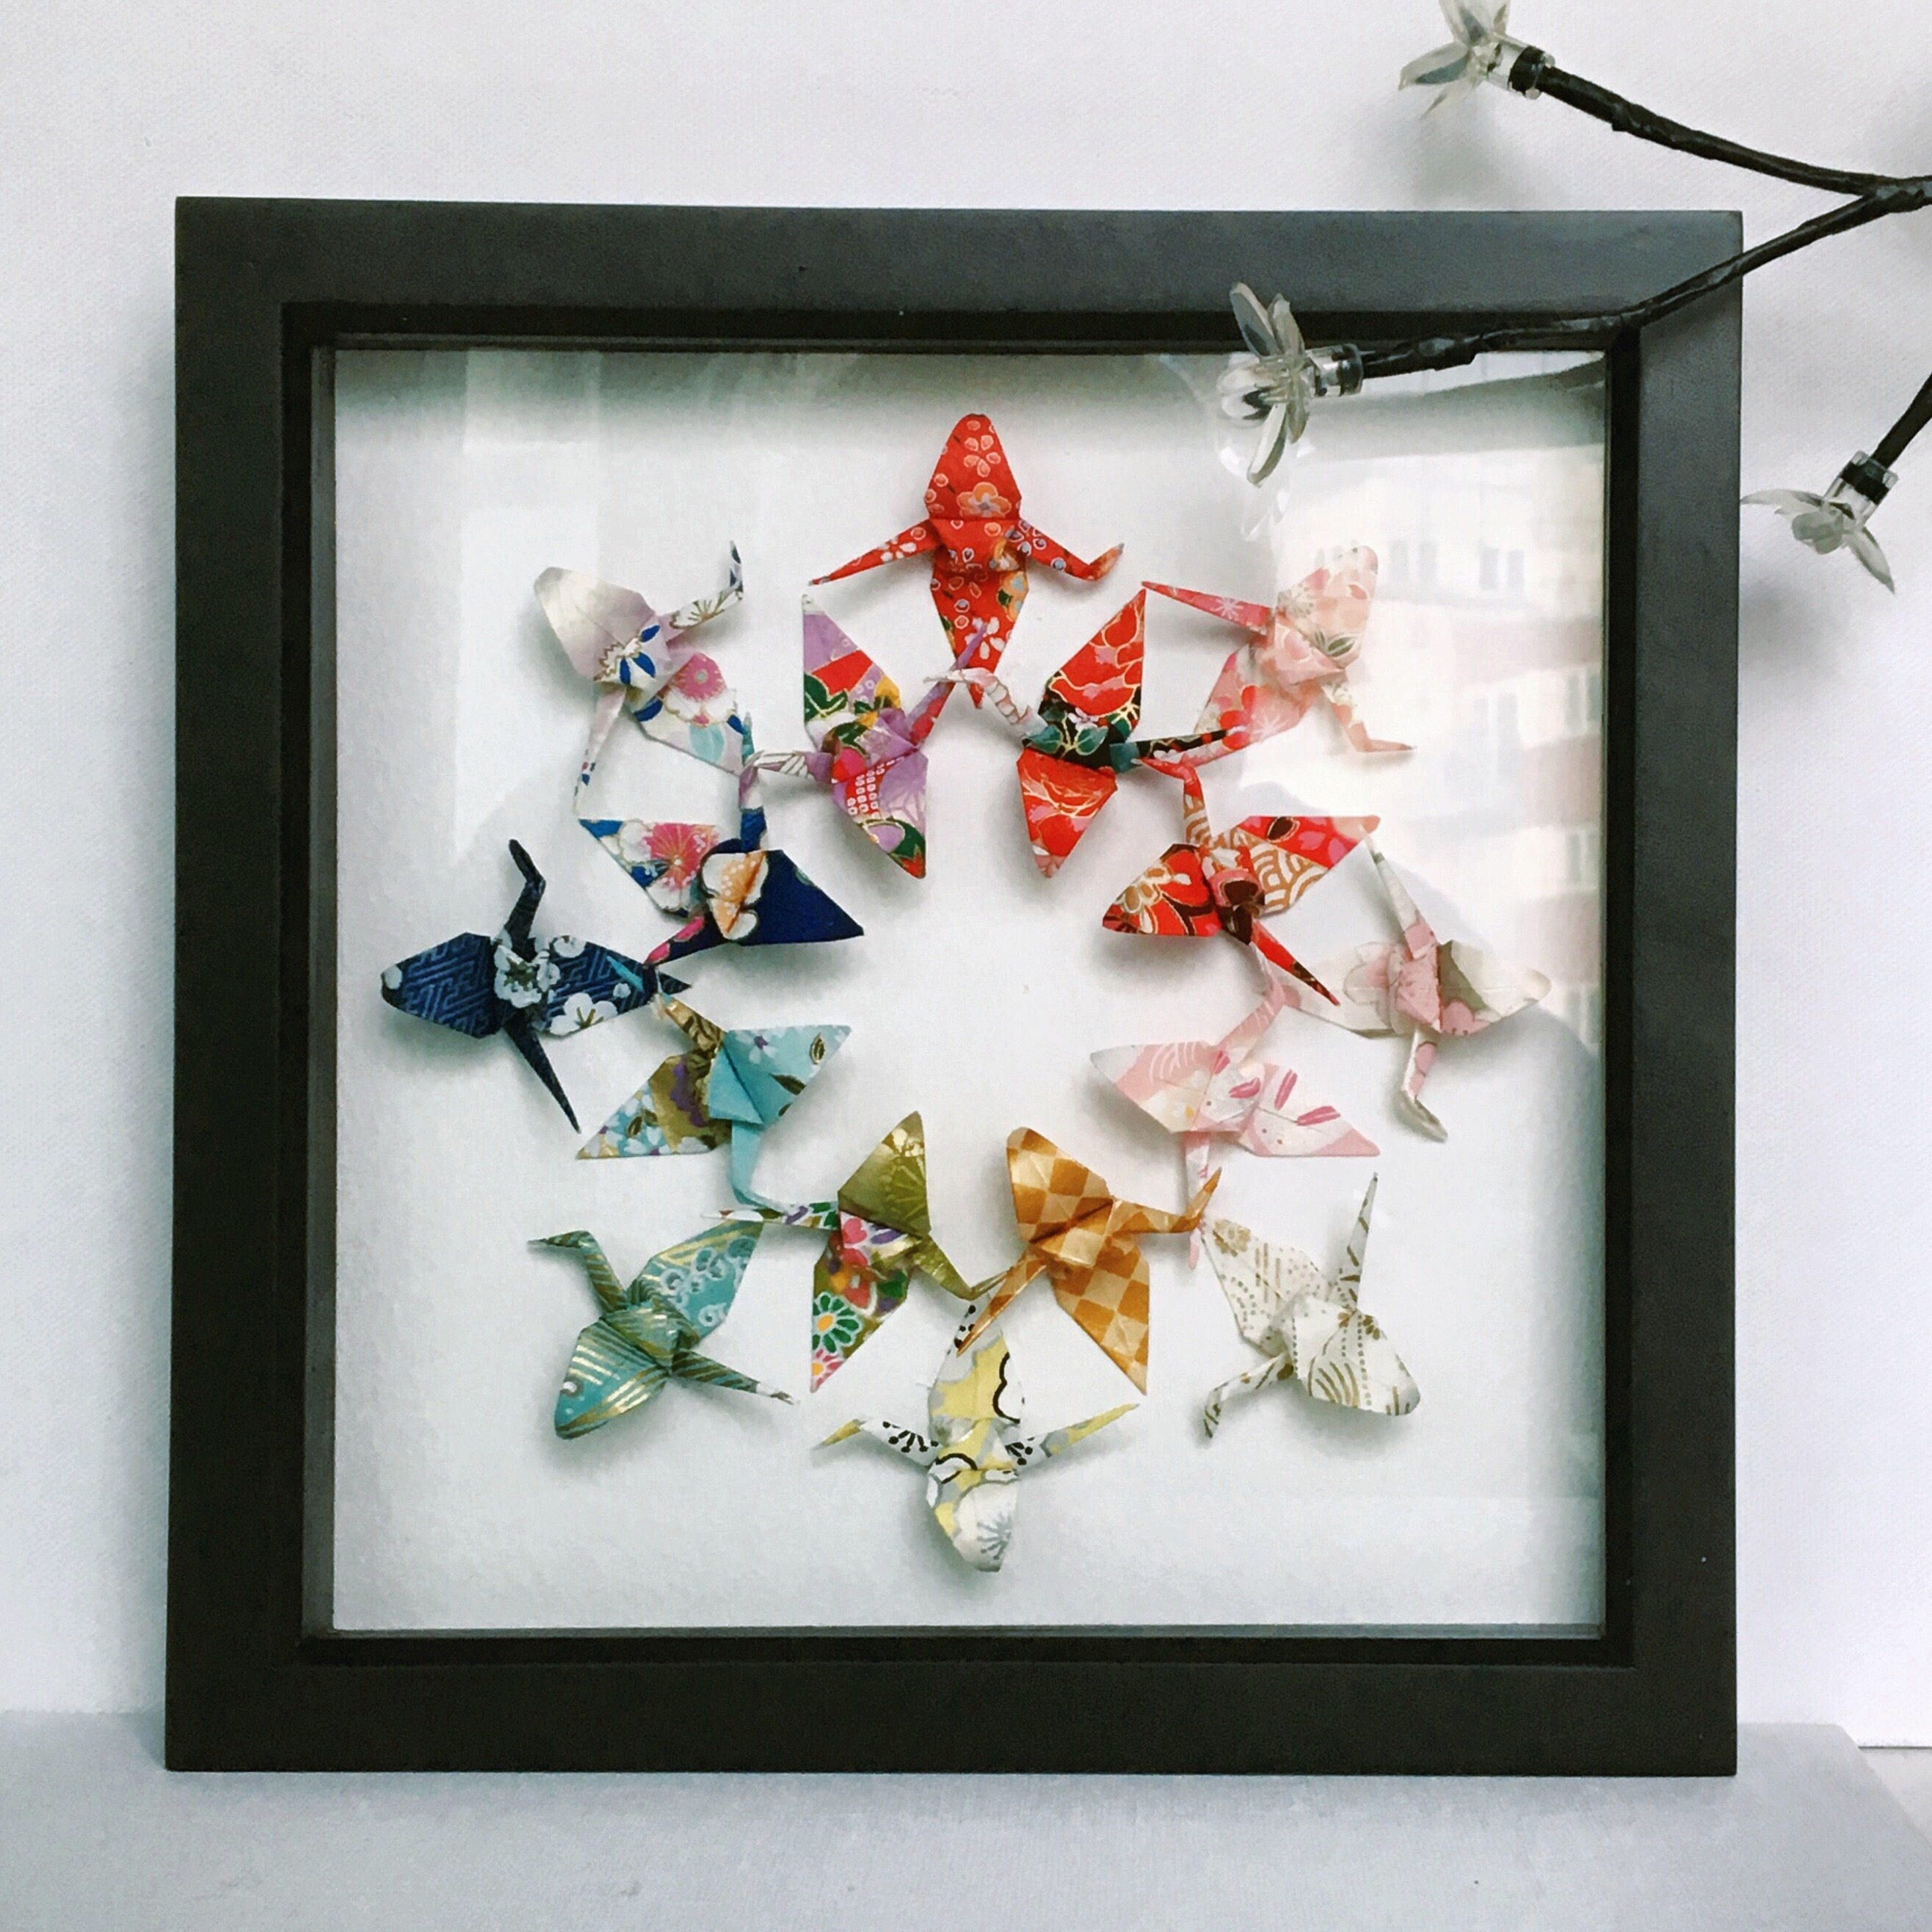 Japanese Origami Wall Art, Japanese Wall Art, Japanese Gift regarding Japanese Wall Art (Image 11 of 20)